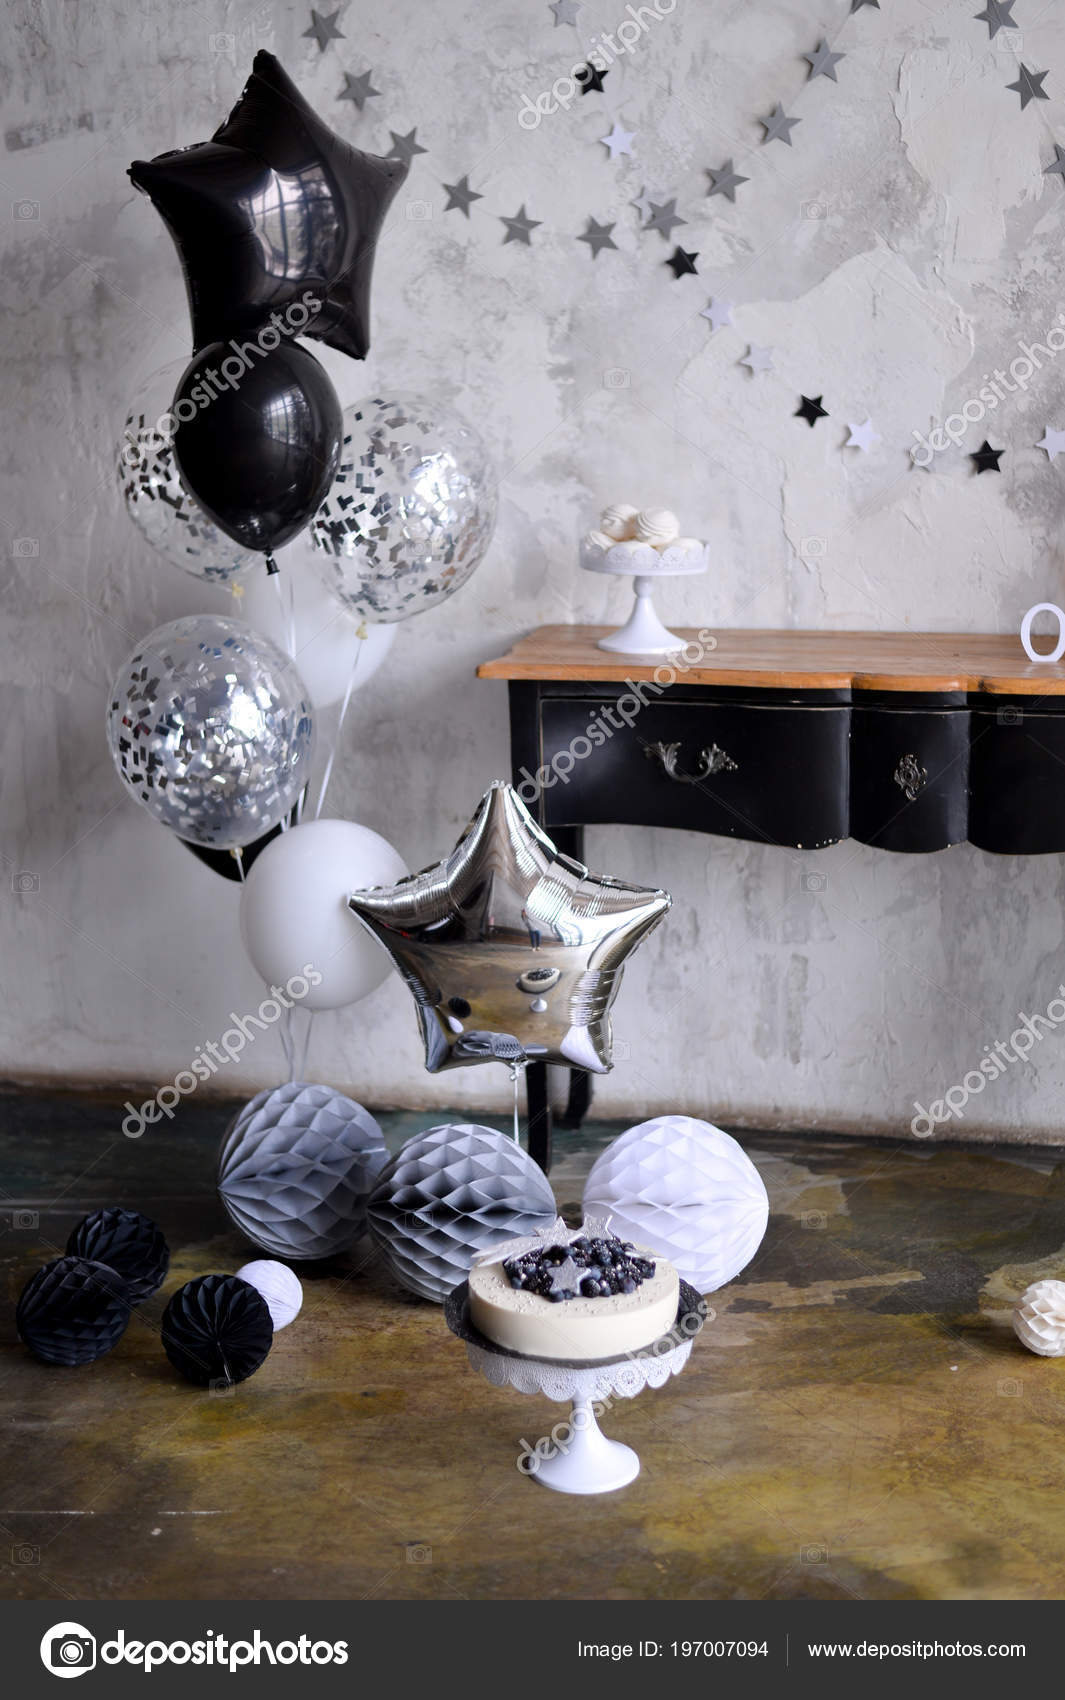 One Year Birthday Decorations Ides Black And White A Lot Of Balloons Colors Cake For Holiday Party Foto Von Annikel